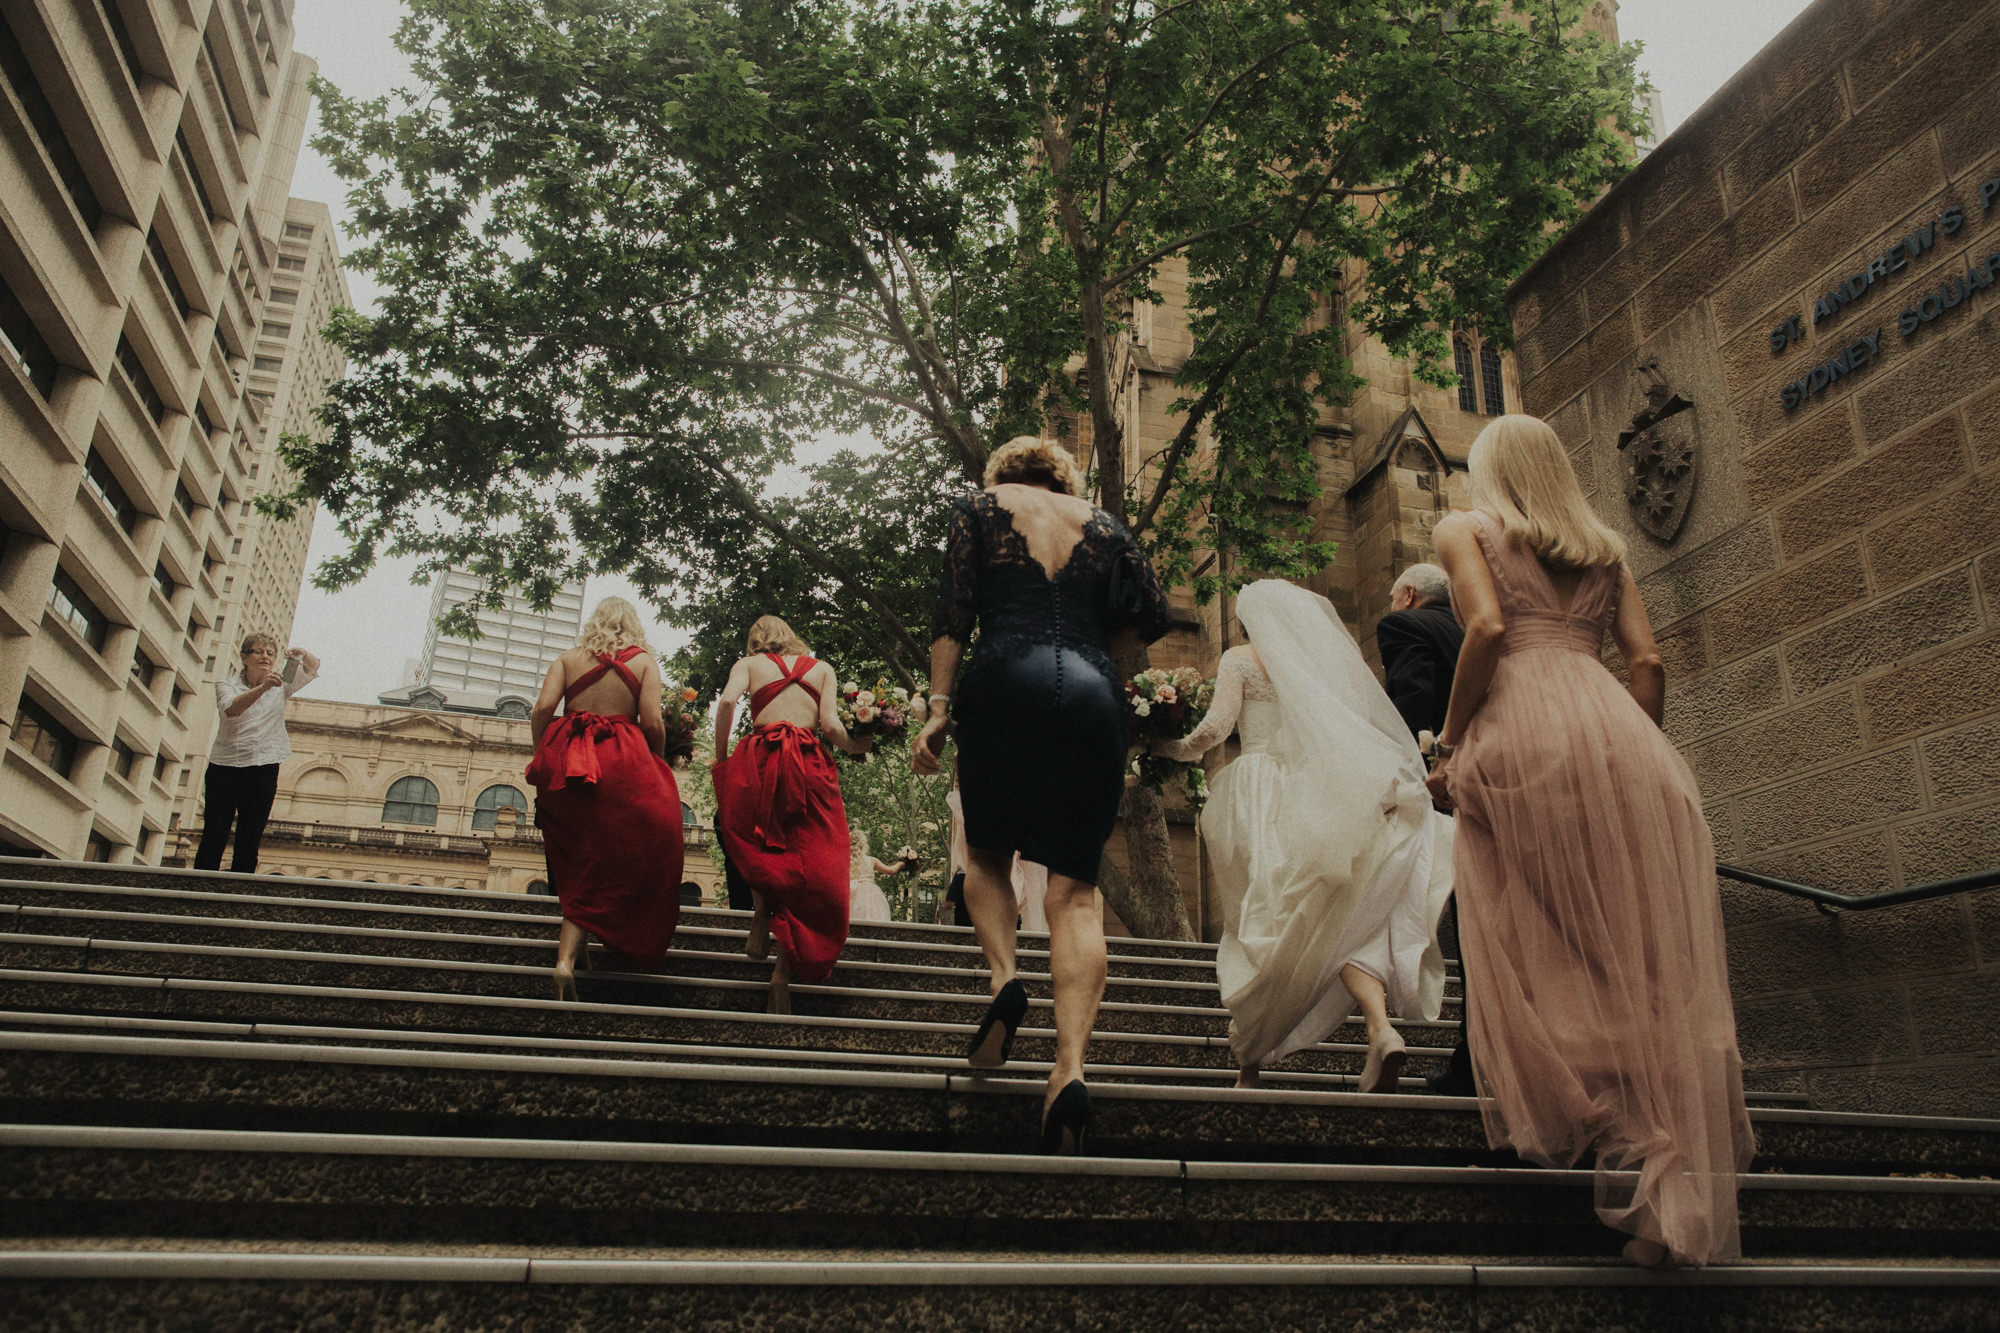 Stranger taking photo of bridal party ascending stairs - photo by Dan O'Day